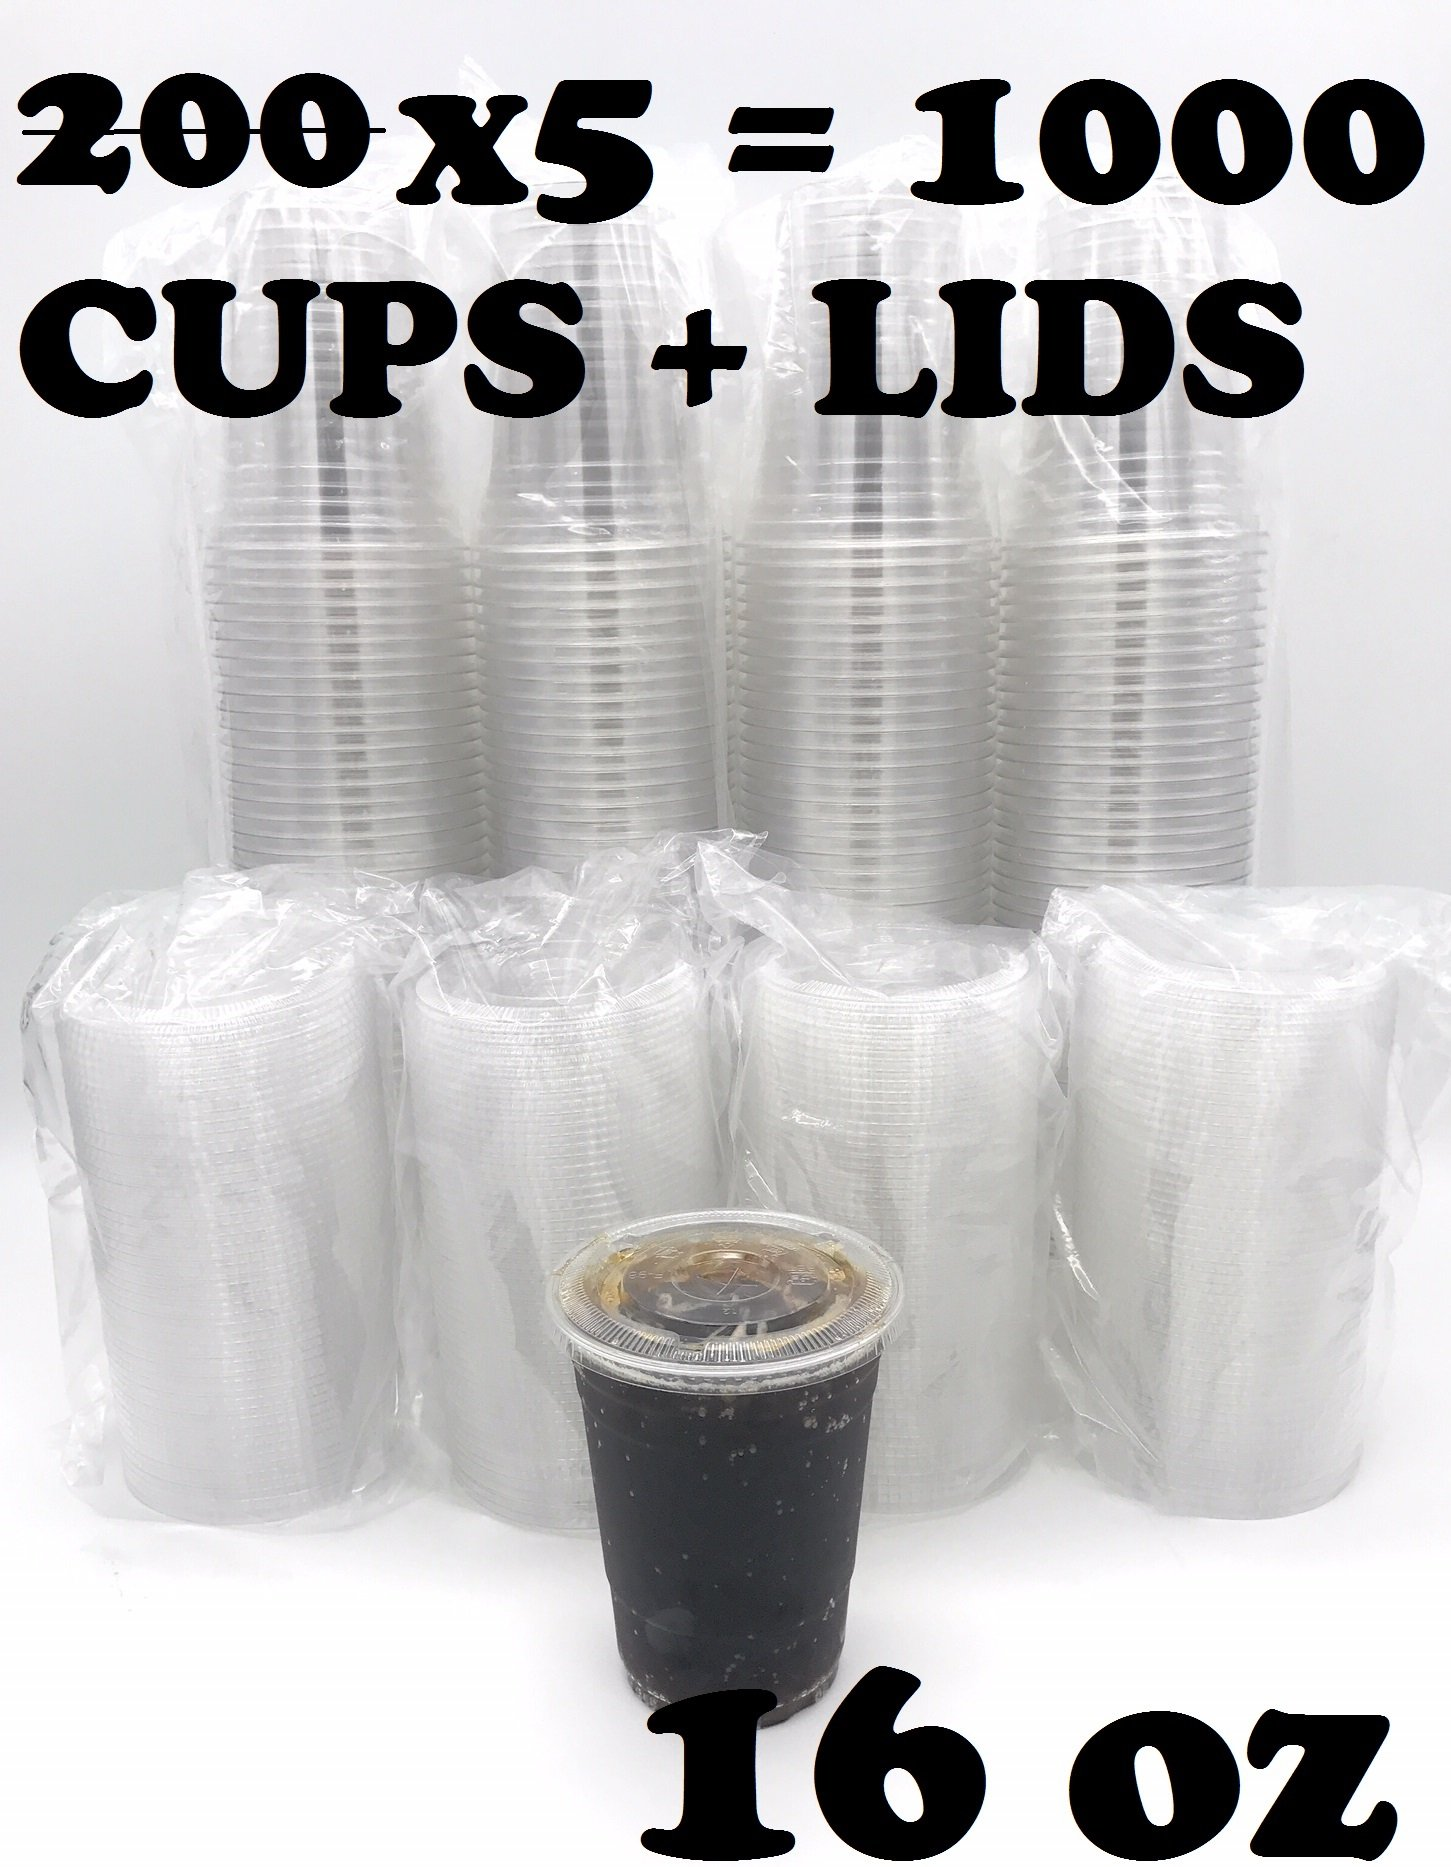 [1000 SETS] Plastic Disposable Cups with Lids - Premium 16 oz (ounces) Crystal Clear PET for Cold Drinks Iced Coffee Tea Juices Smoothies Slushy Soda Cocktails Beer Kids Safe (16oz Cups + Flat Lids)